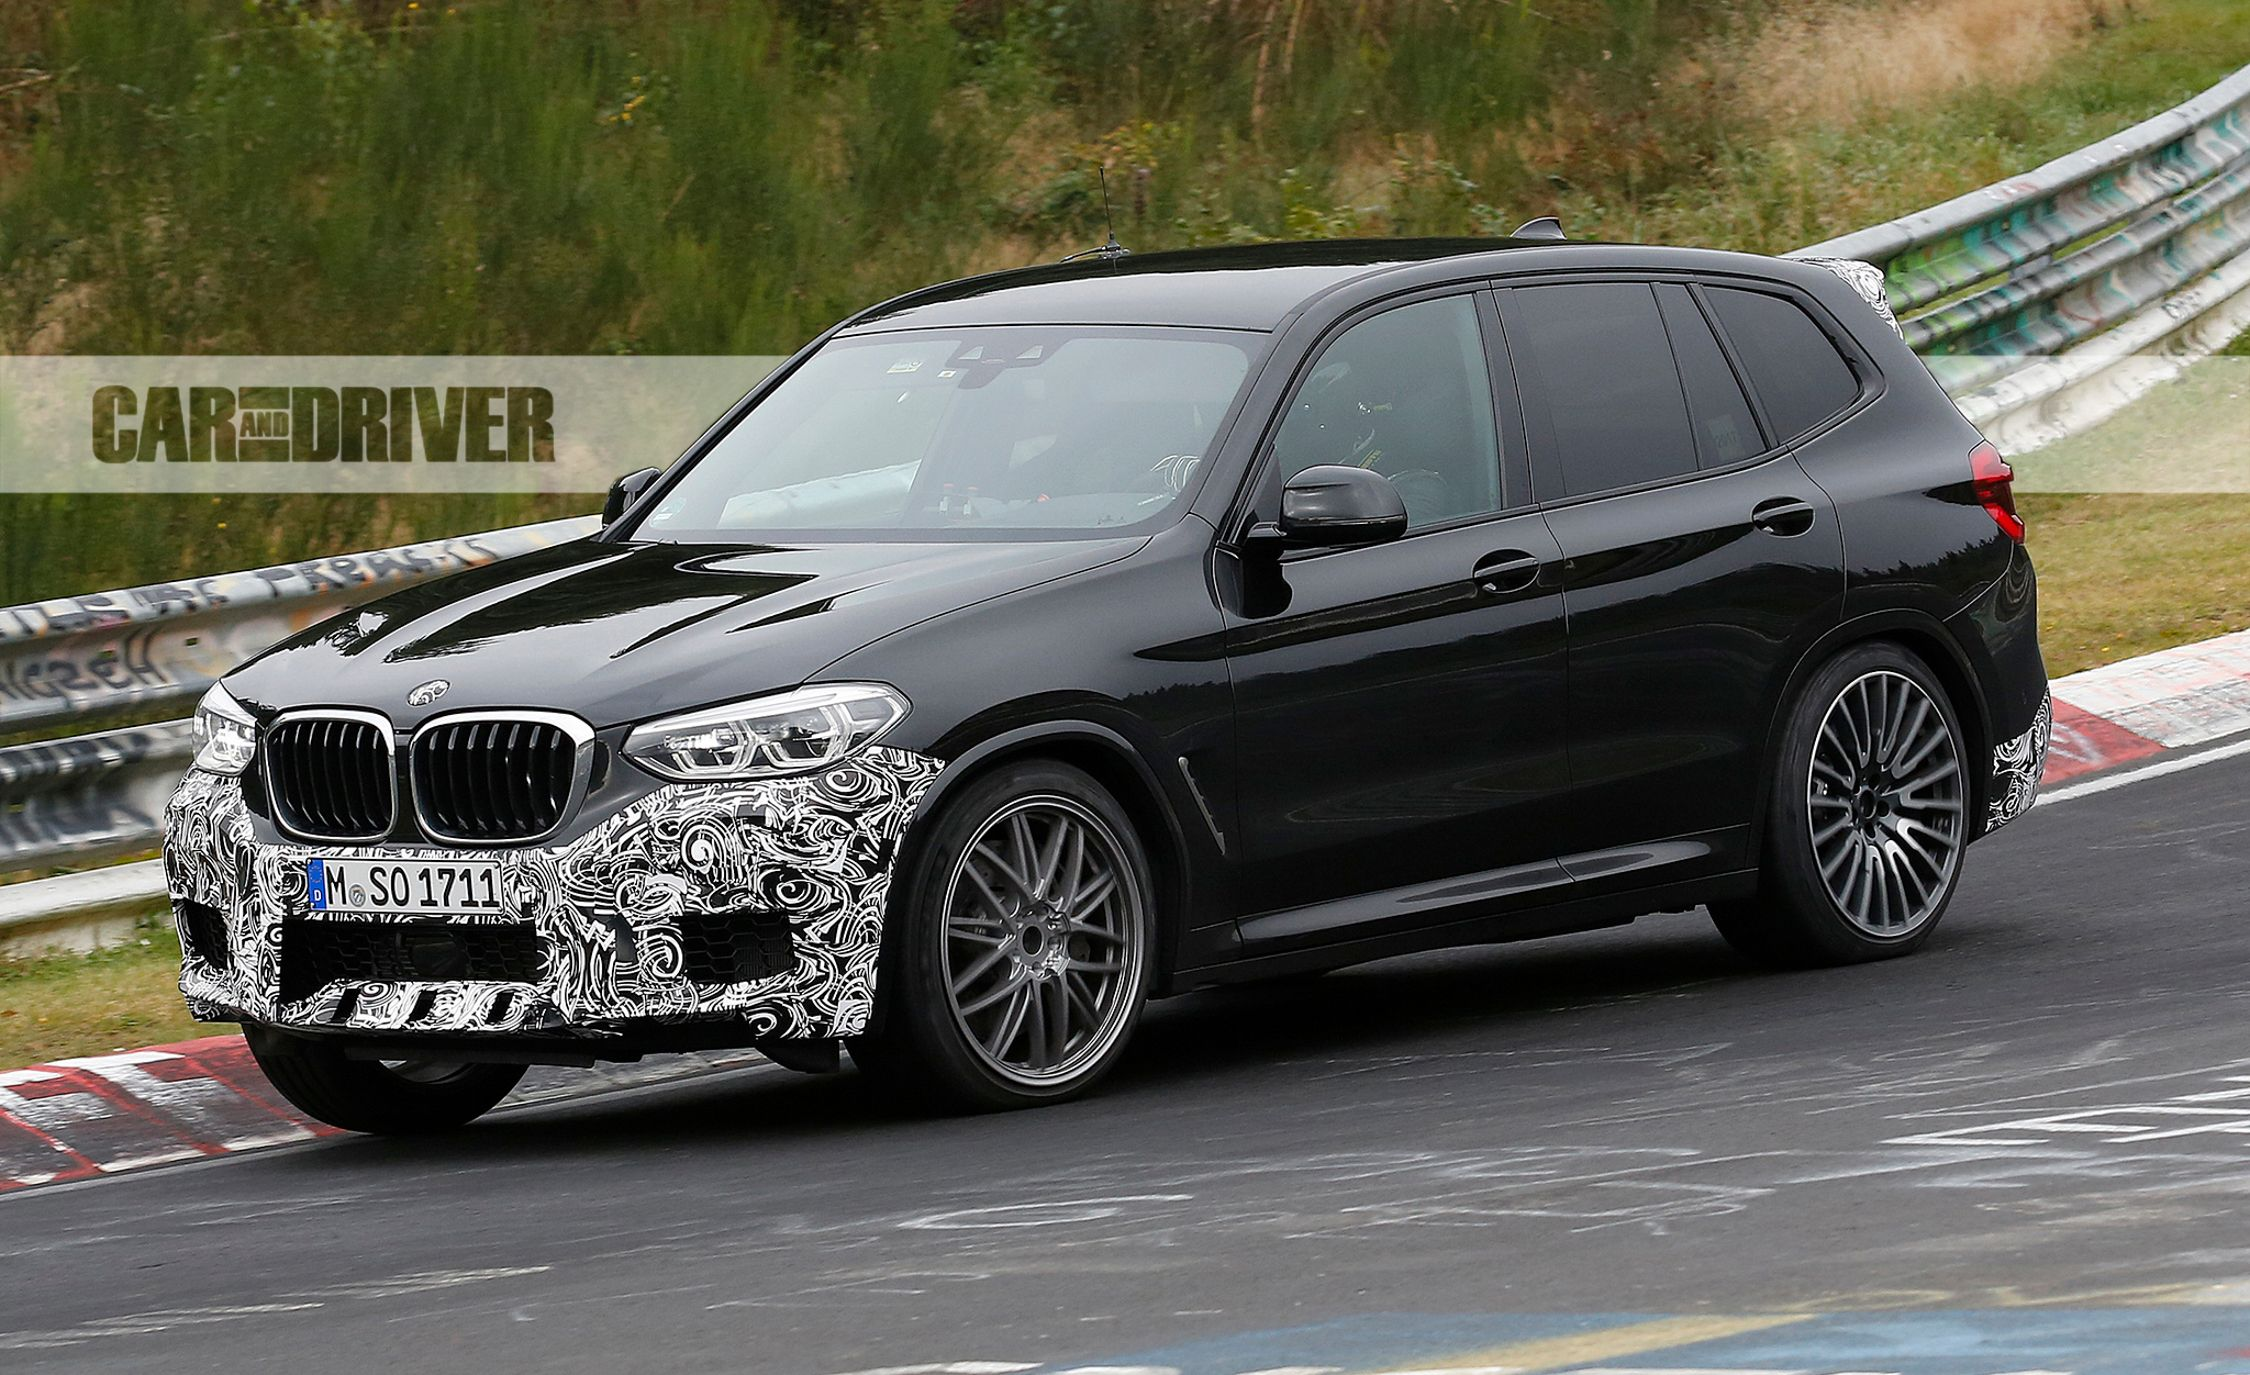 Land Rover For Sale Near Me >> 2020 BMW X3 M Spied! | News | Car and Driver